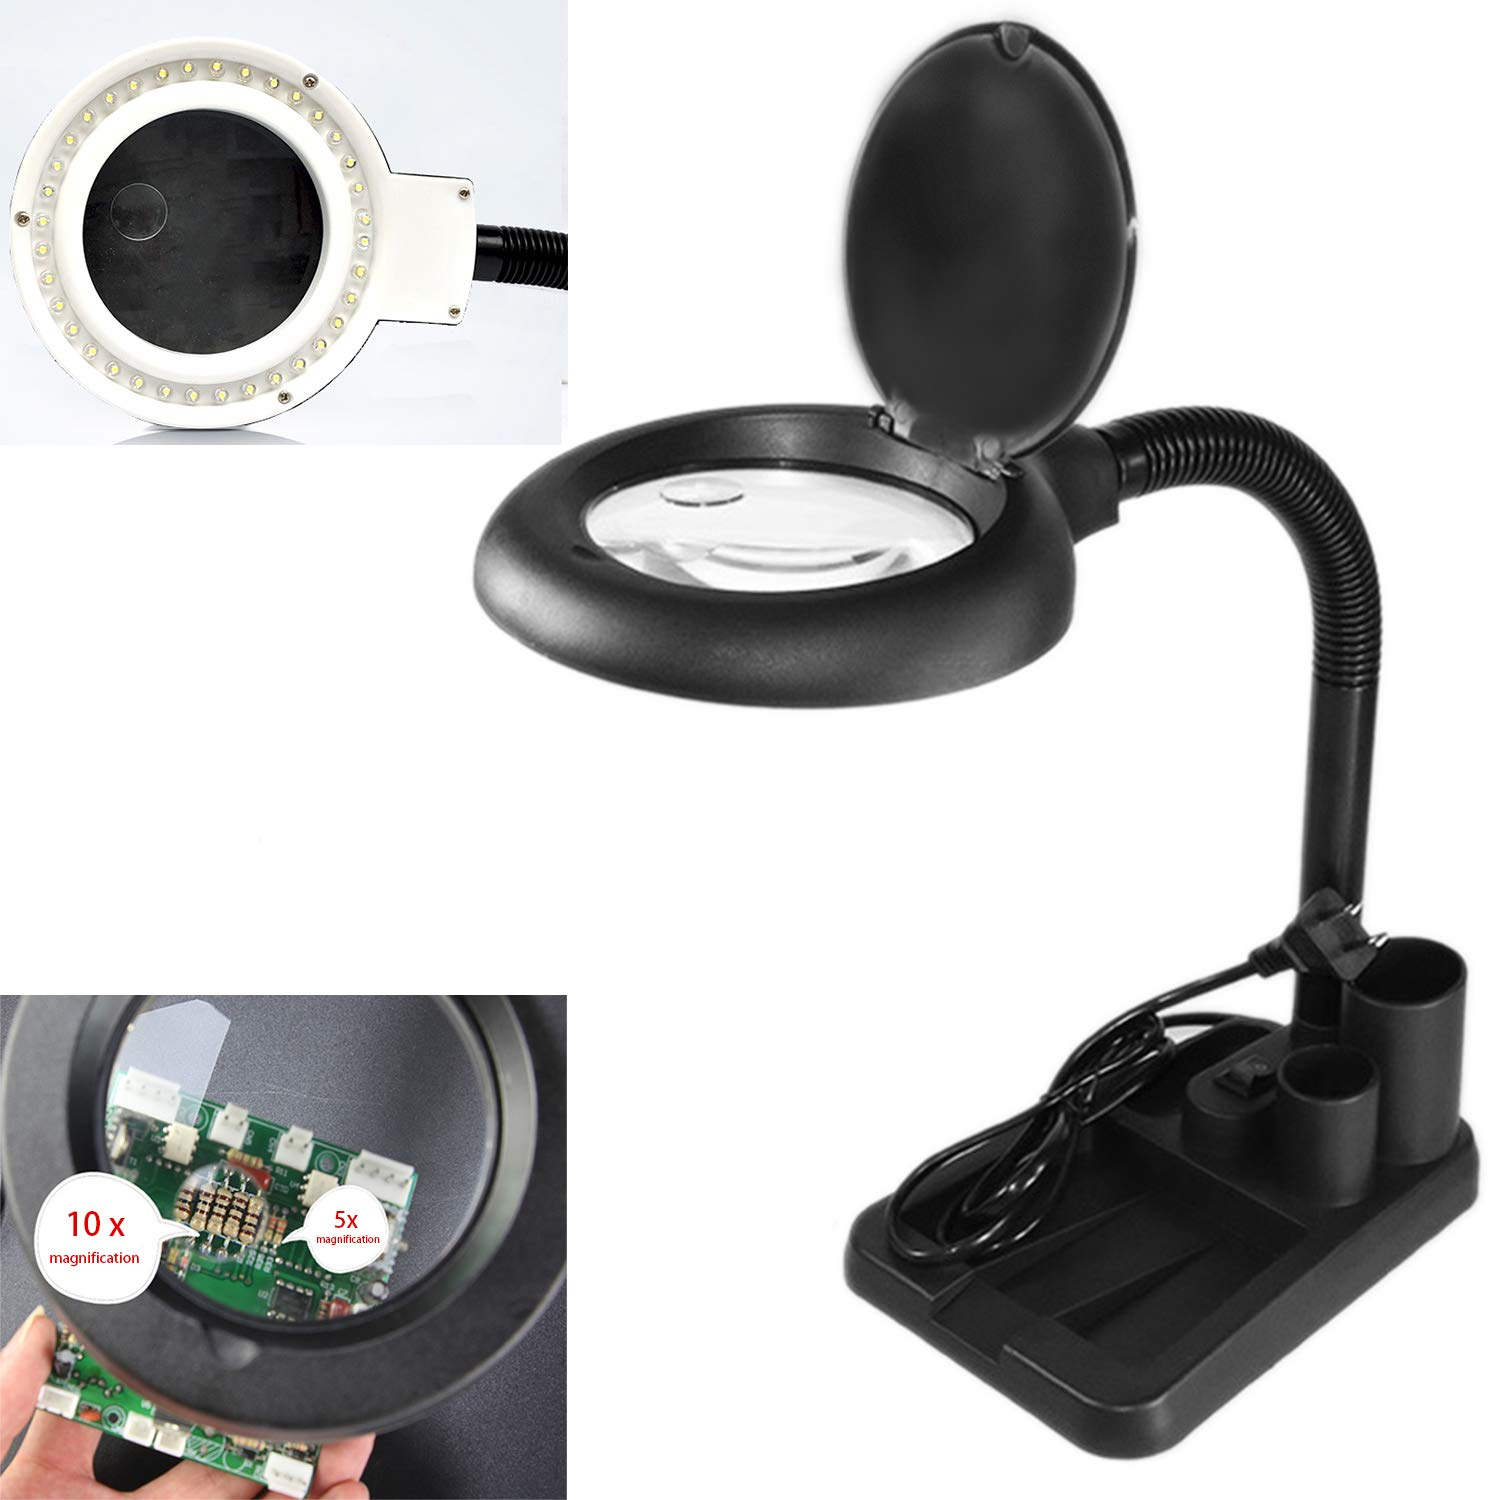 LED Magnifying Glass with Light, 5 X 10X Magnifier and Table & Desk Lamp for Close Work by Fullsexy